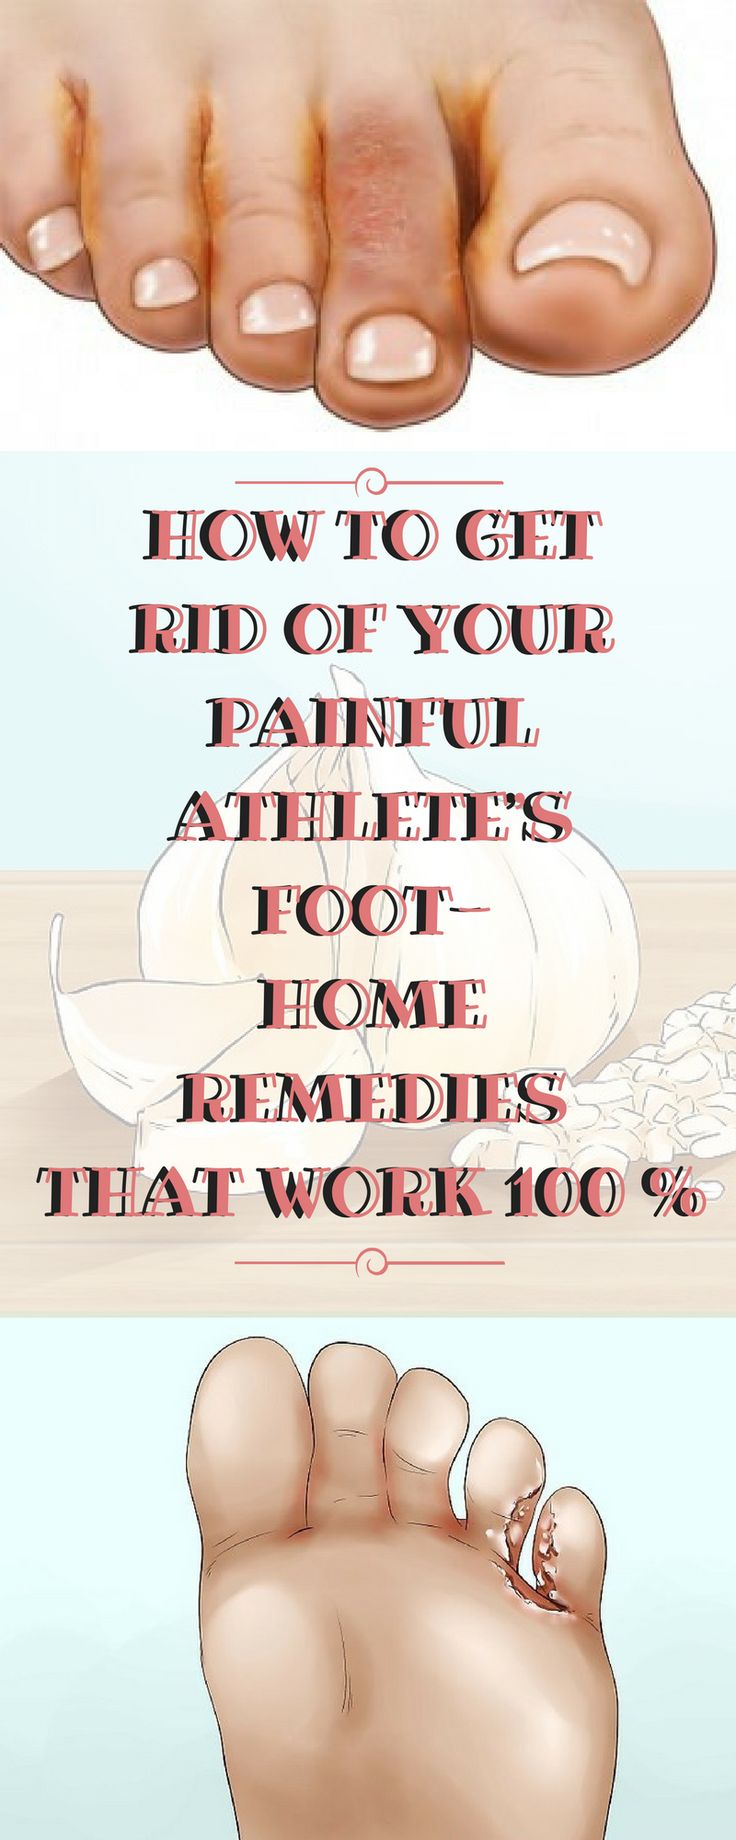 HOW TO GET RID OF YOUR PAINFUL ATHLETE'S FOOT- HOME REMEDIES THAT WORK 100 %